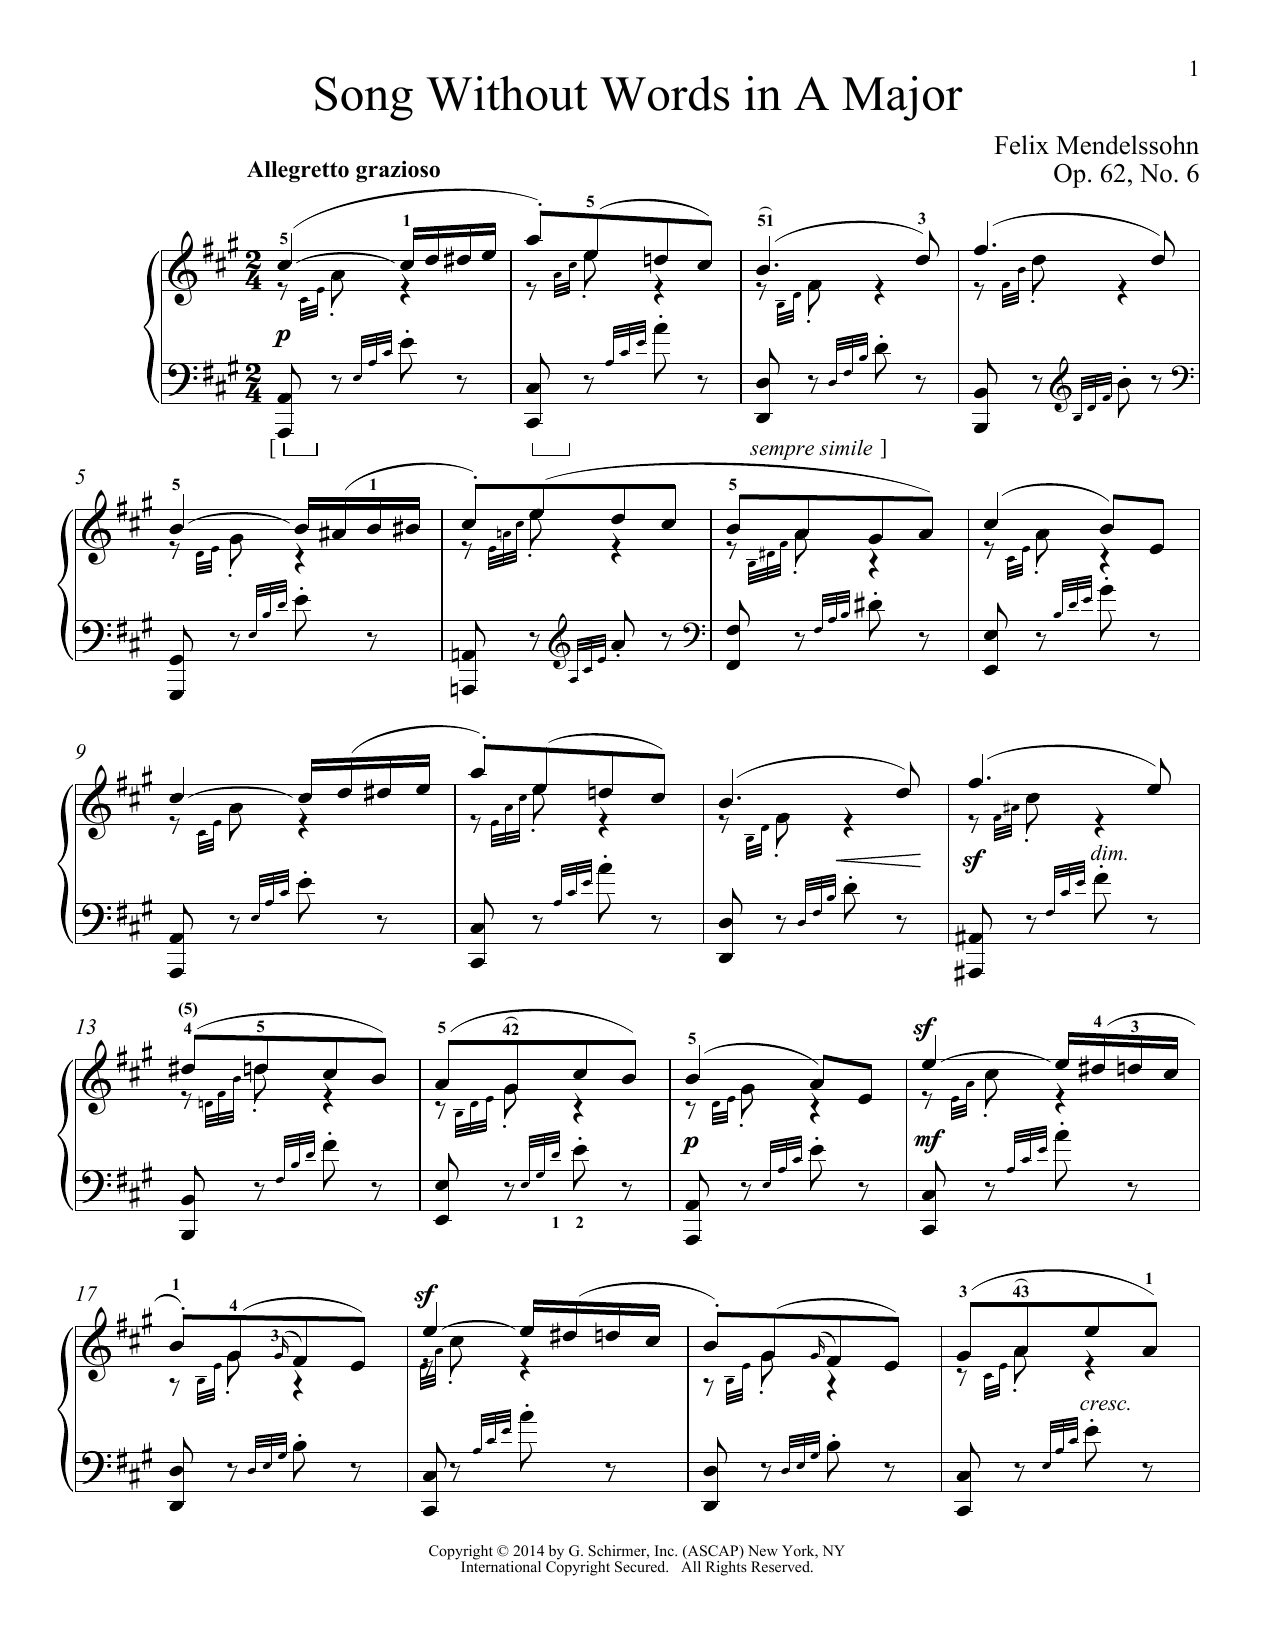 Immanuela Gruenberg Song Without Words In A Major, Op. 62, No. 6 sheet music notes and chords